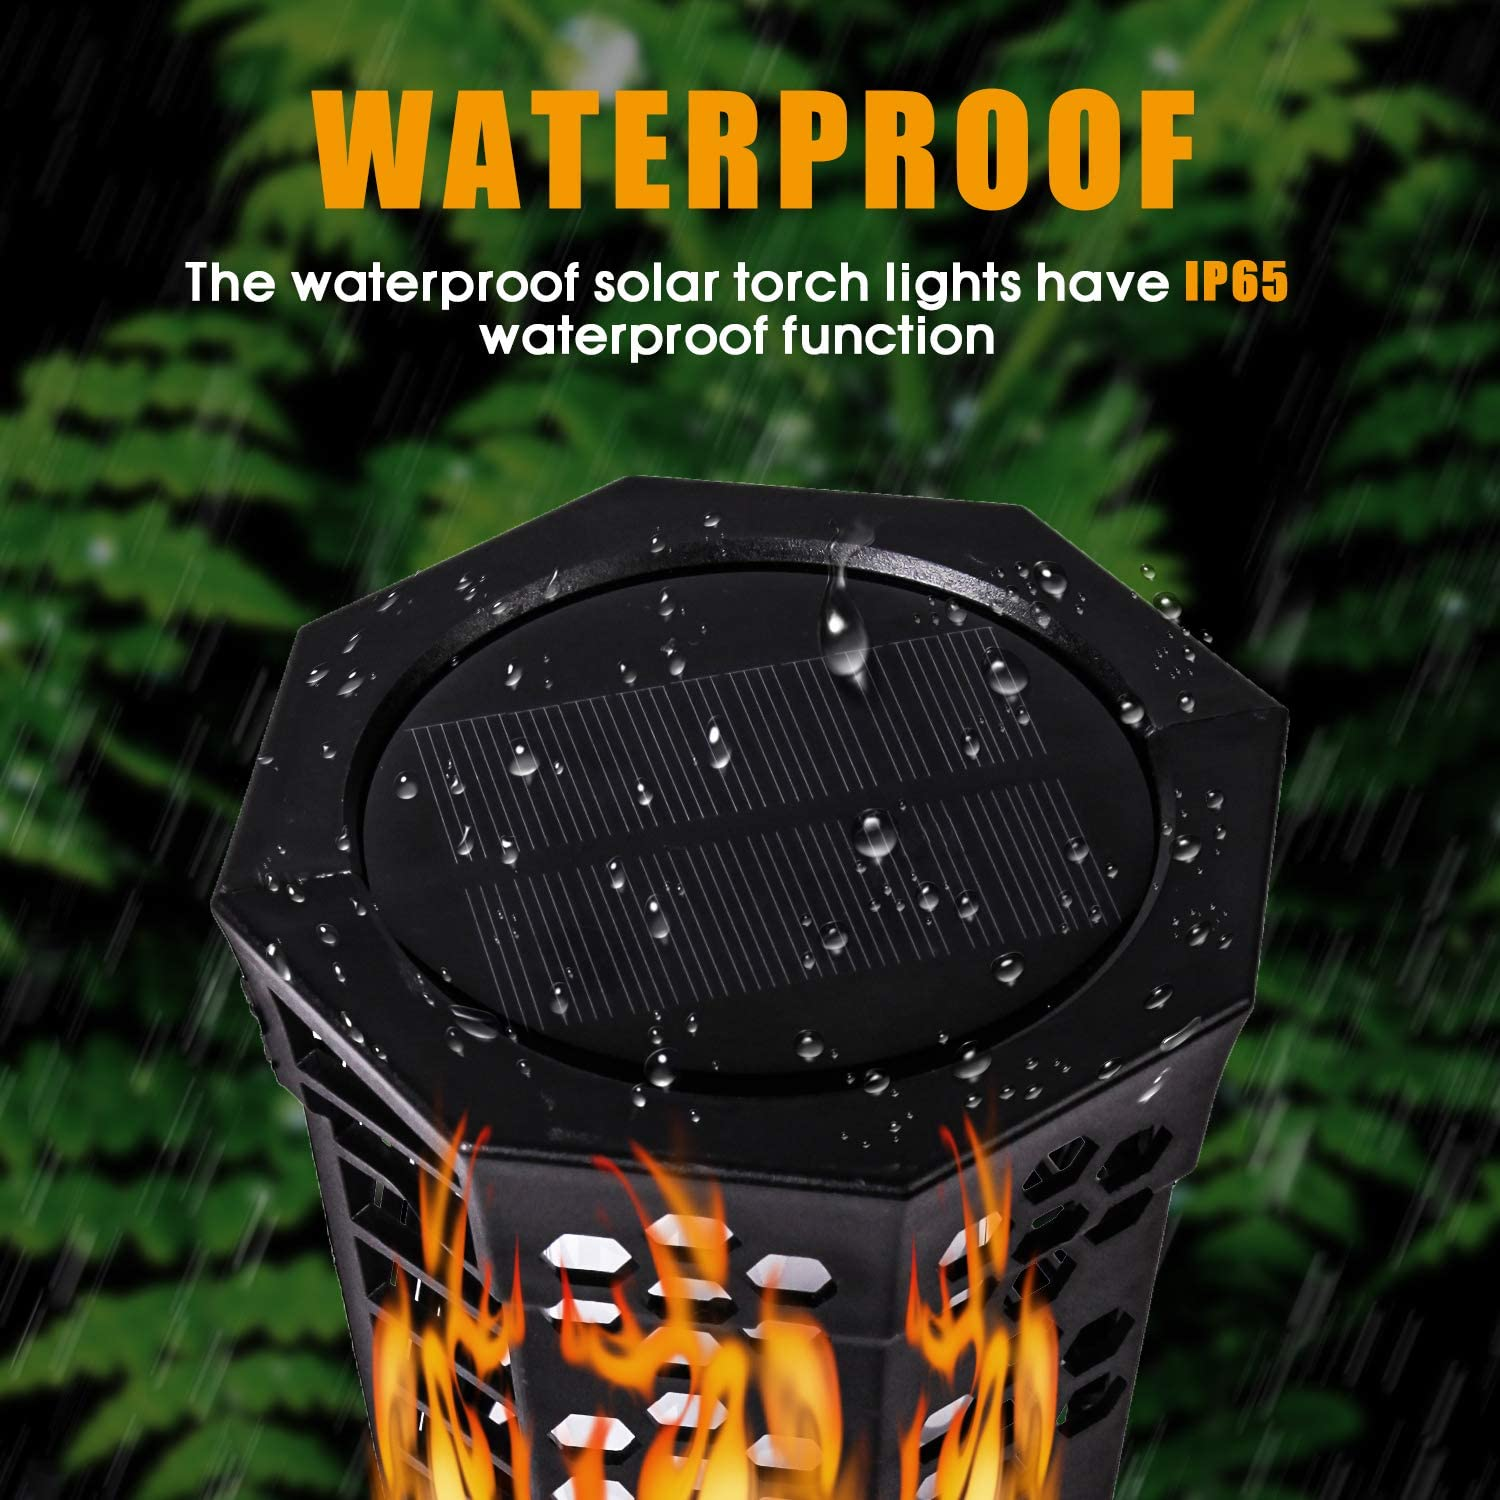 LETTON LED Garden Path Solar Powered Lights Flickering Flames Torches Lights Dusk to Dawn Auto On//Off Waterproof Landscape Lighting Driveway Security Light for Lawn Patio Yard Garden Walkway